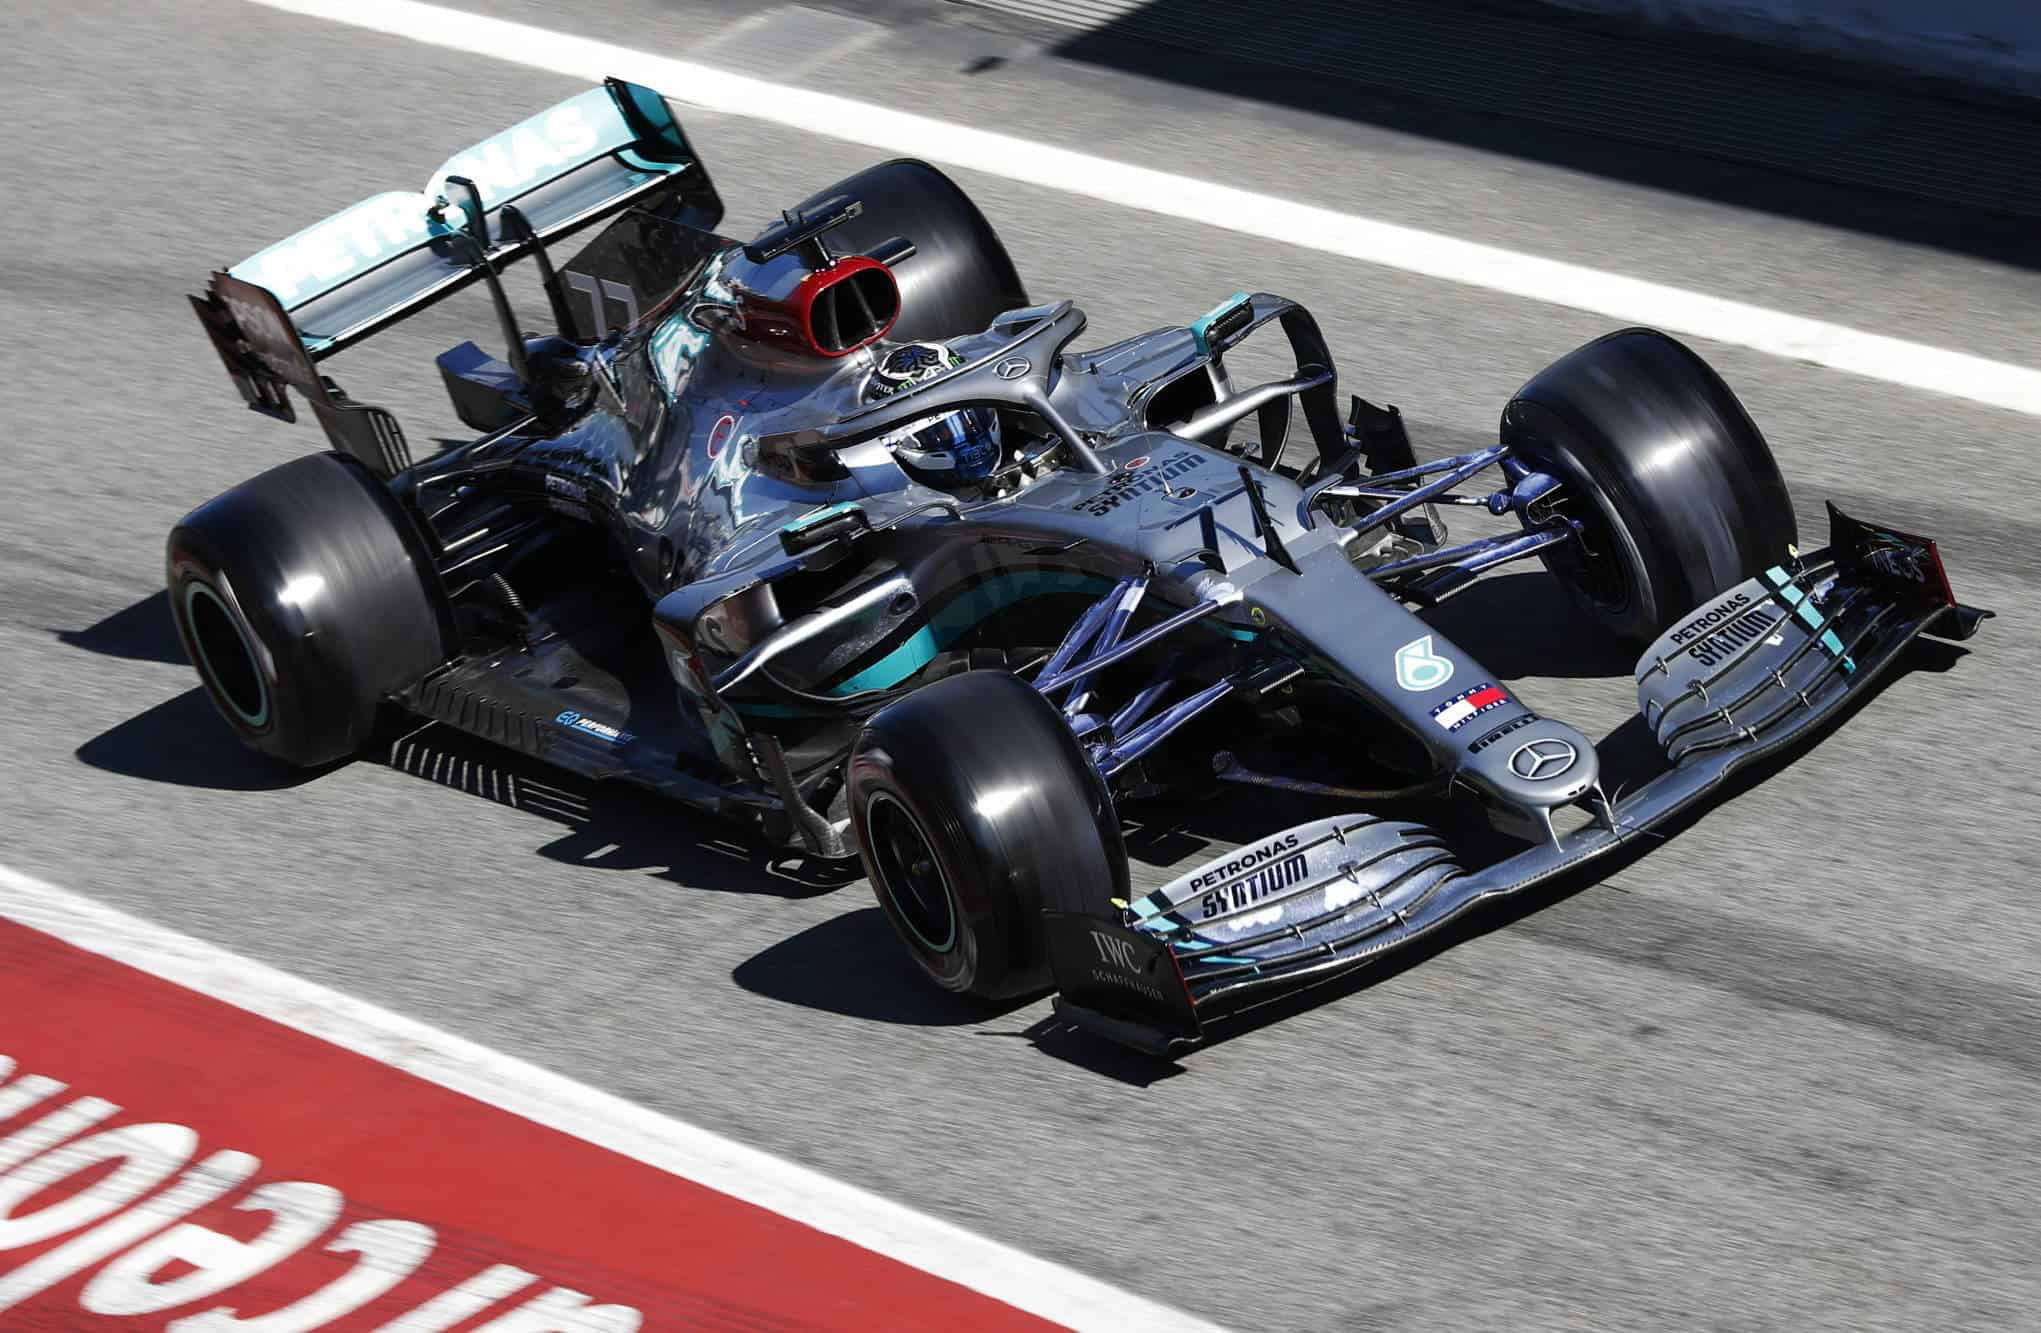 Bottas Mercedes F1 W11 Barcelona Test 1 Day 2 pitlane Photo Daimler